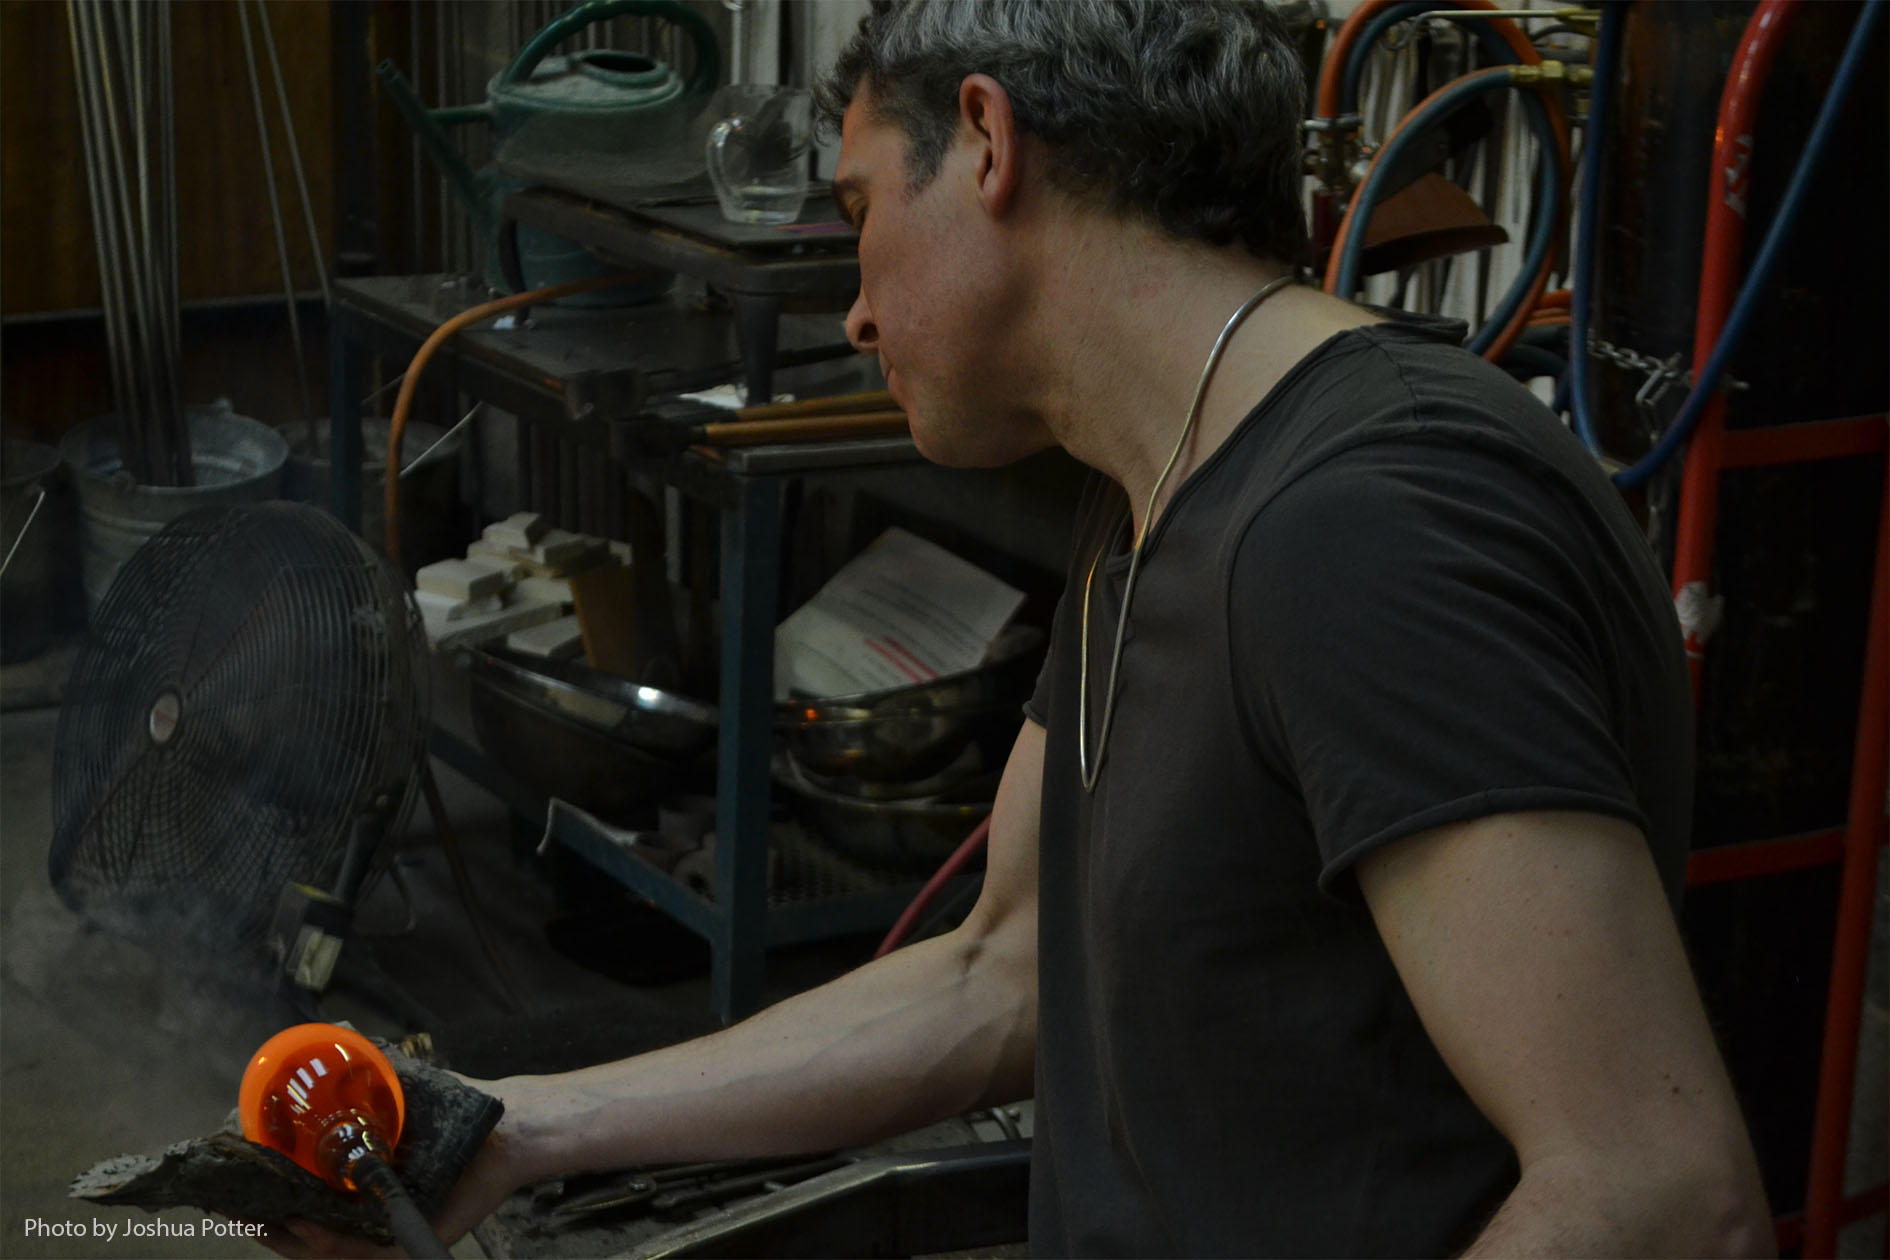 It can take ten years for an apprentice glassblower to get good enough to produce their own work independently. Layne Rowe (above) has been a glassblower for about twenty-five years, starting after he finished university.